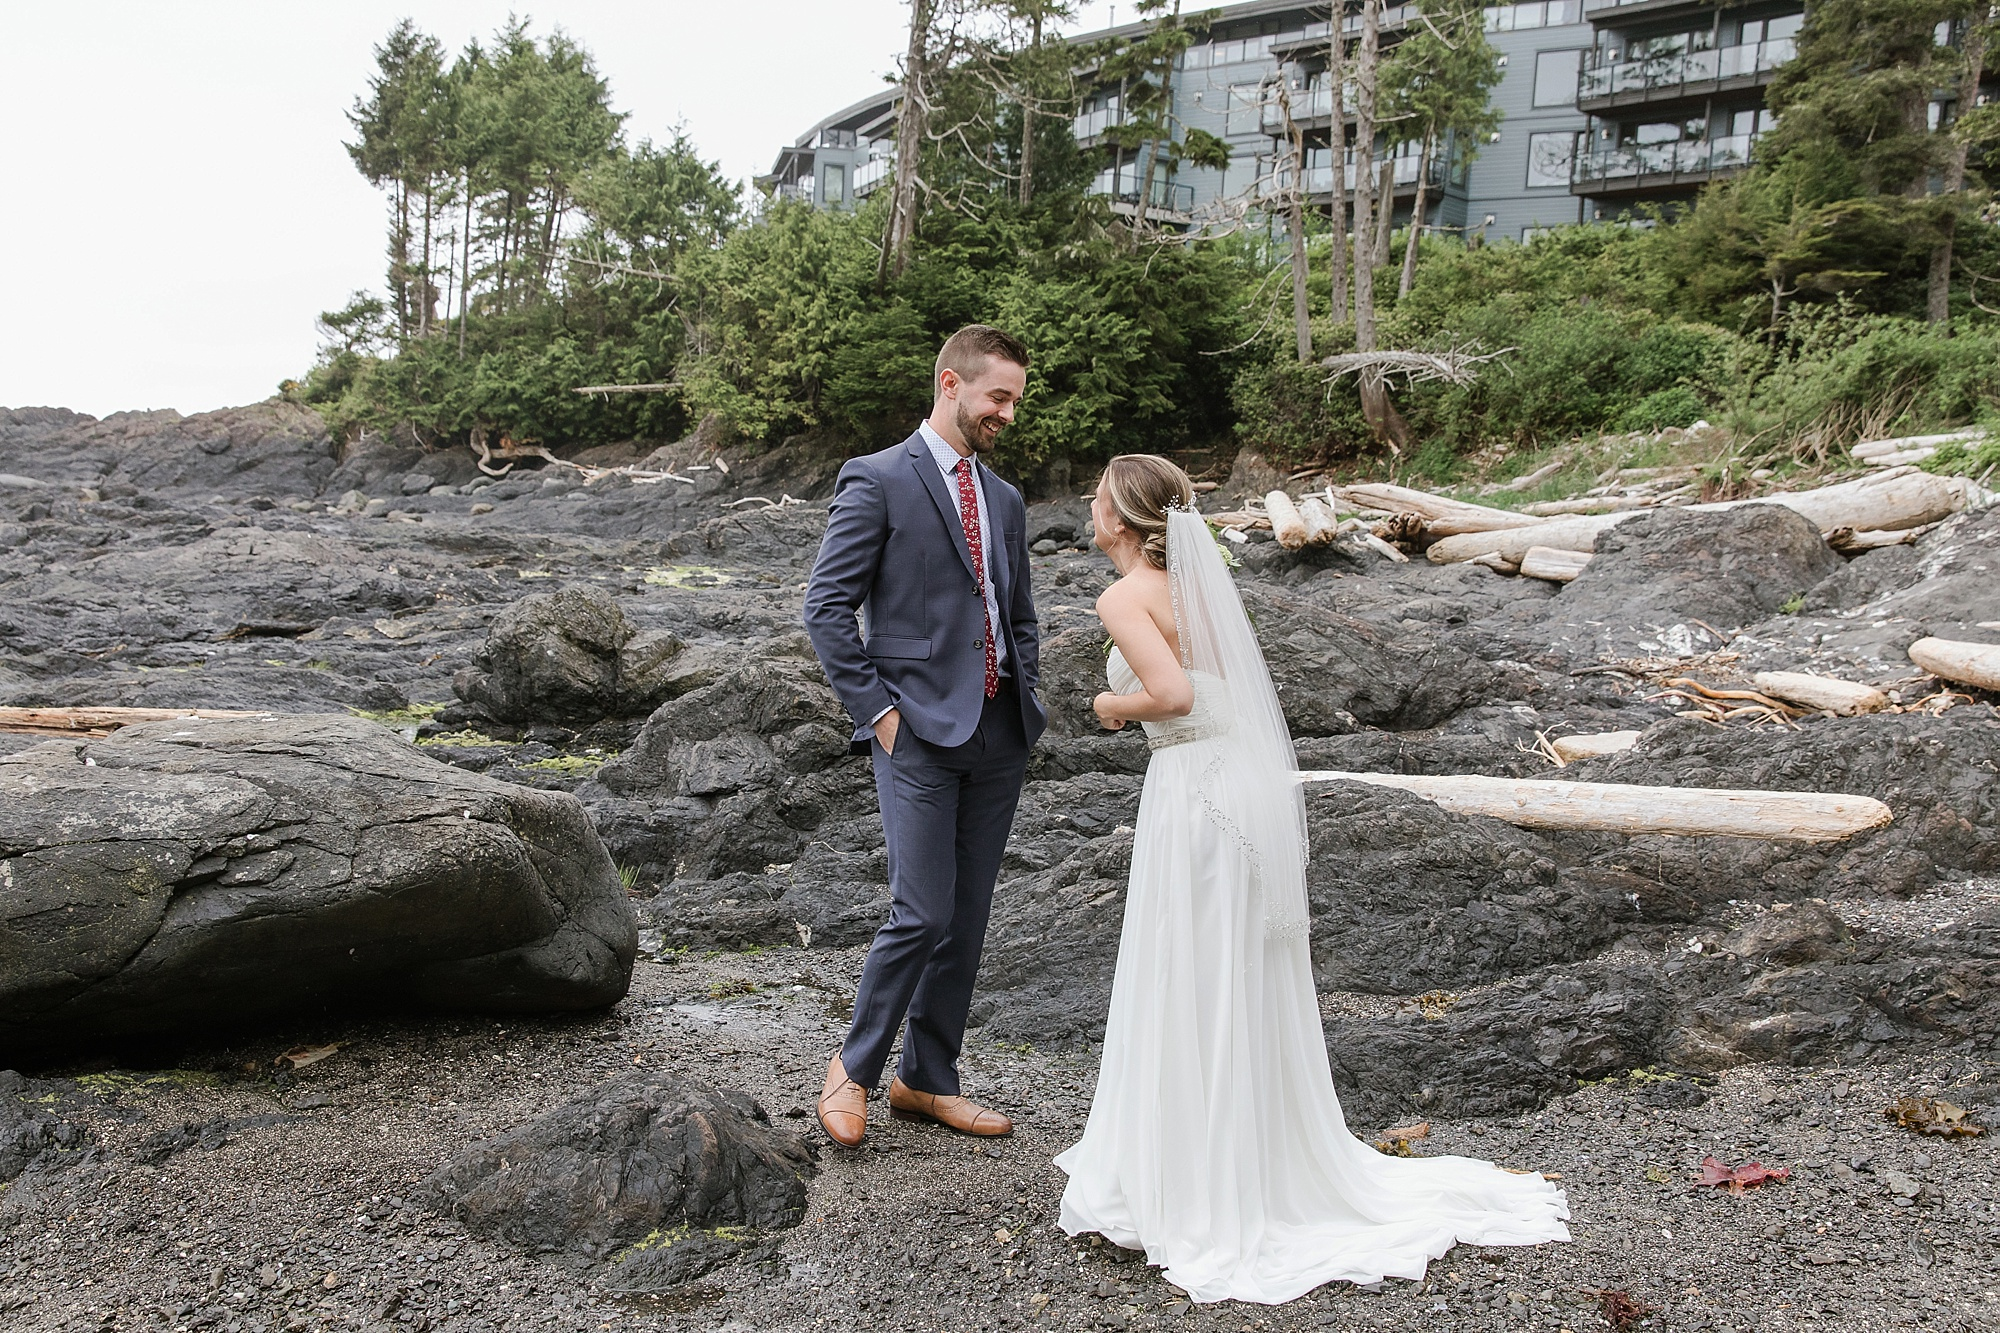 blackrockoceanfrontresort-wedding_0040.jpg